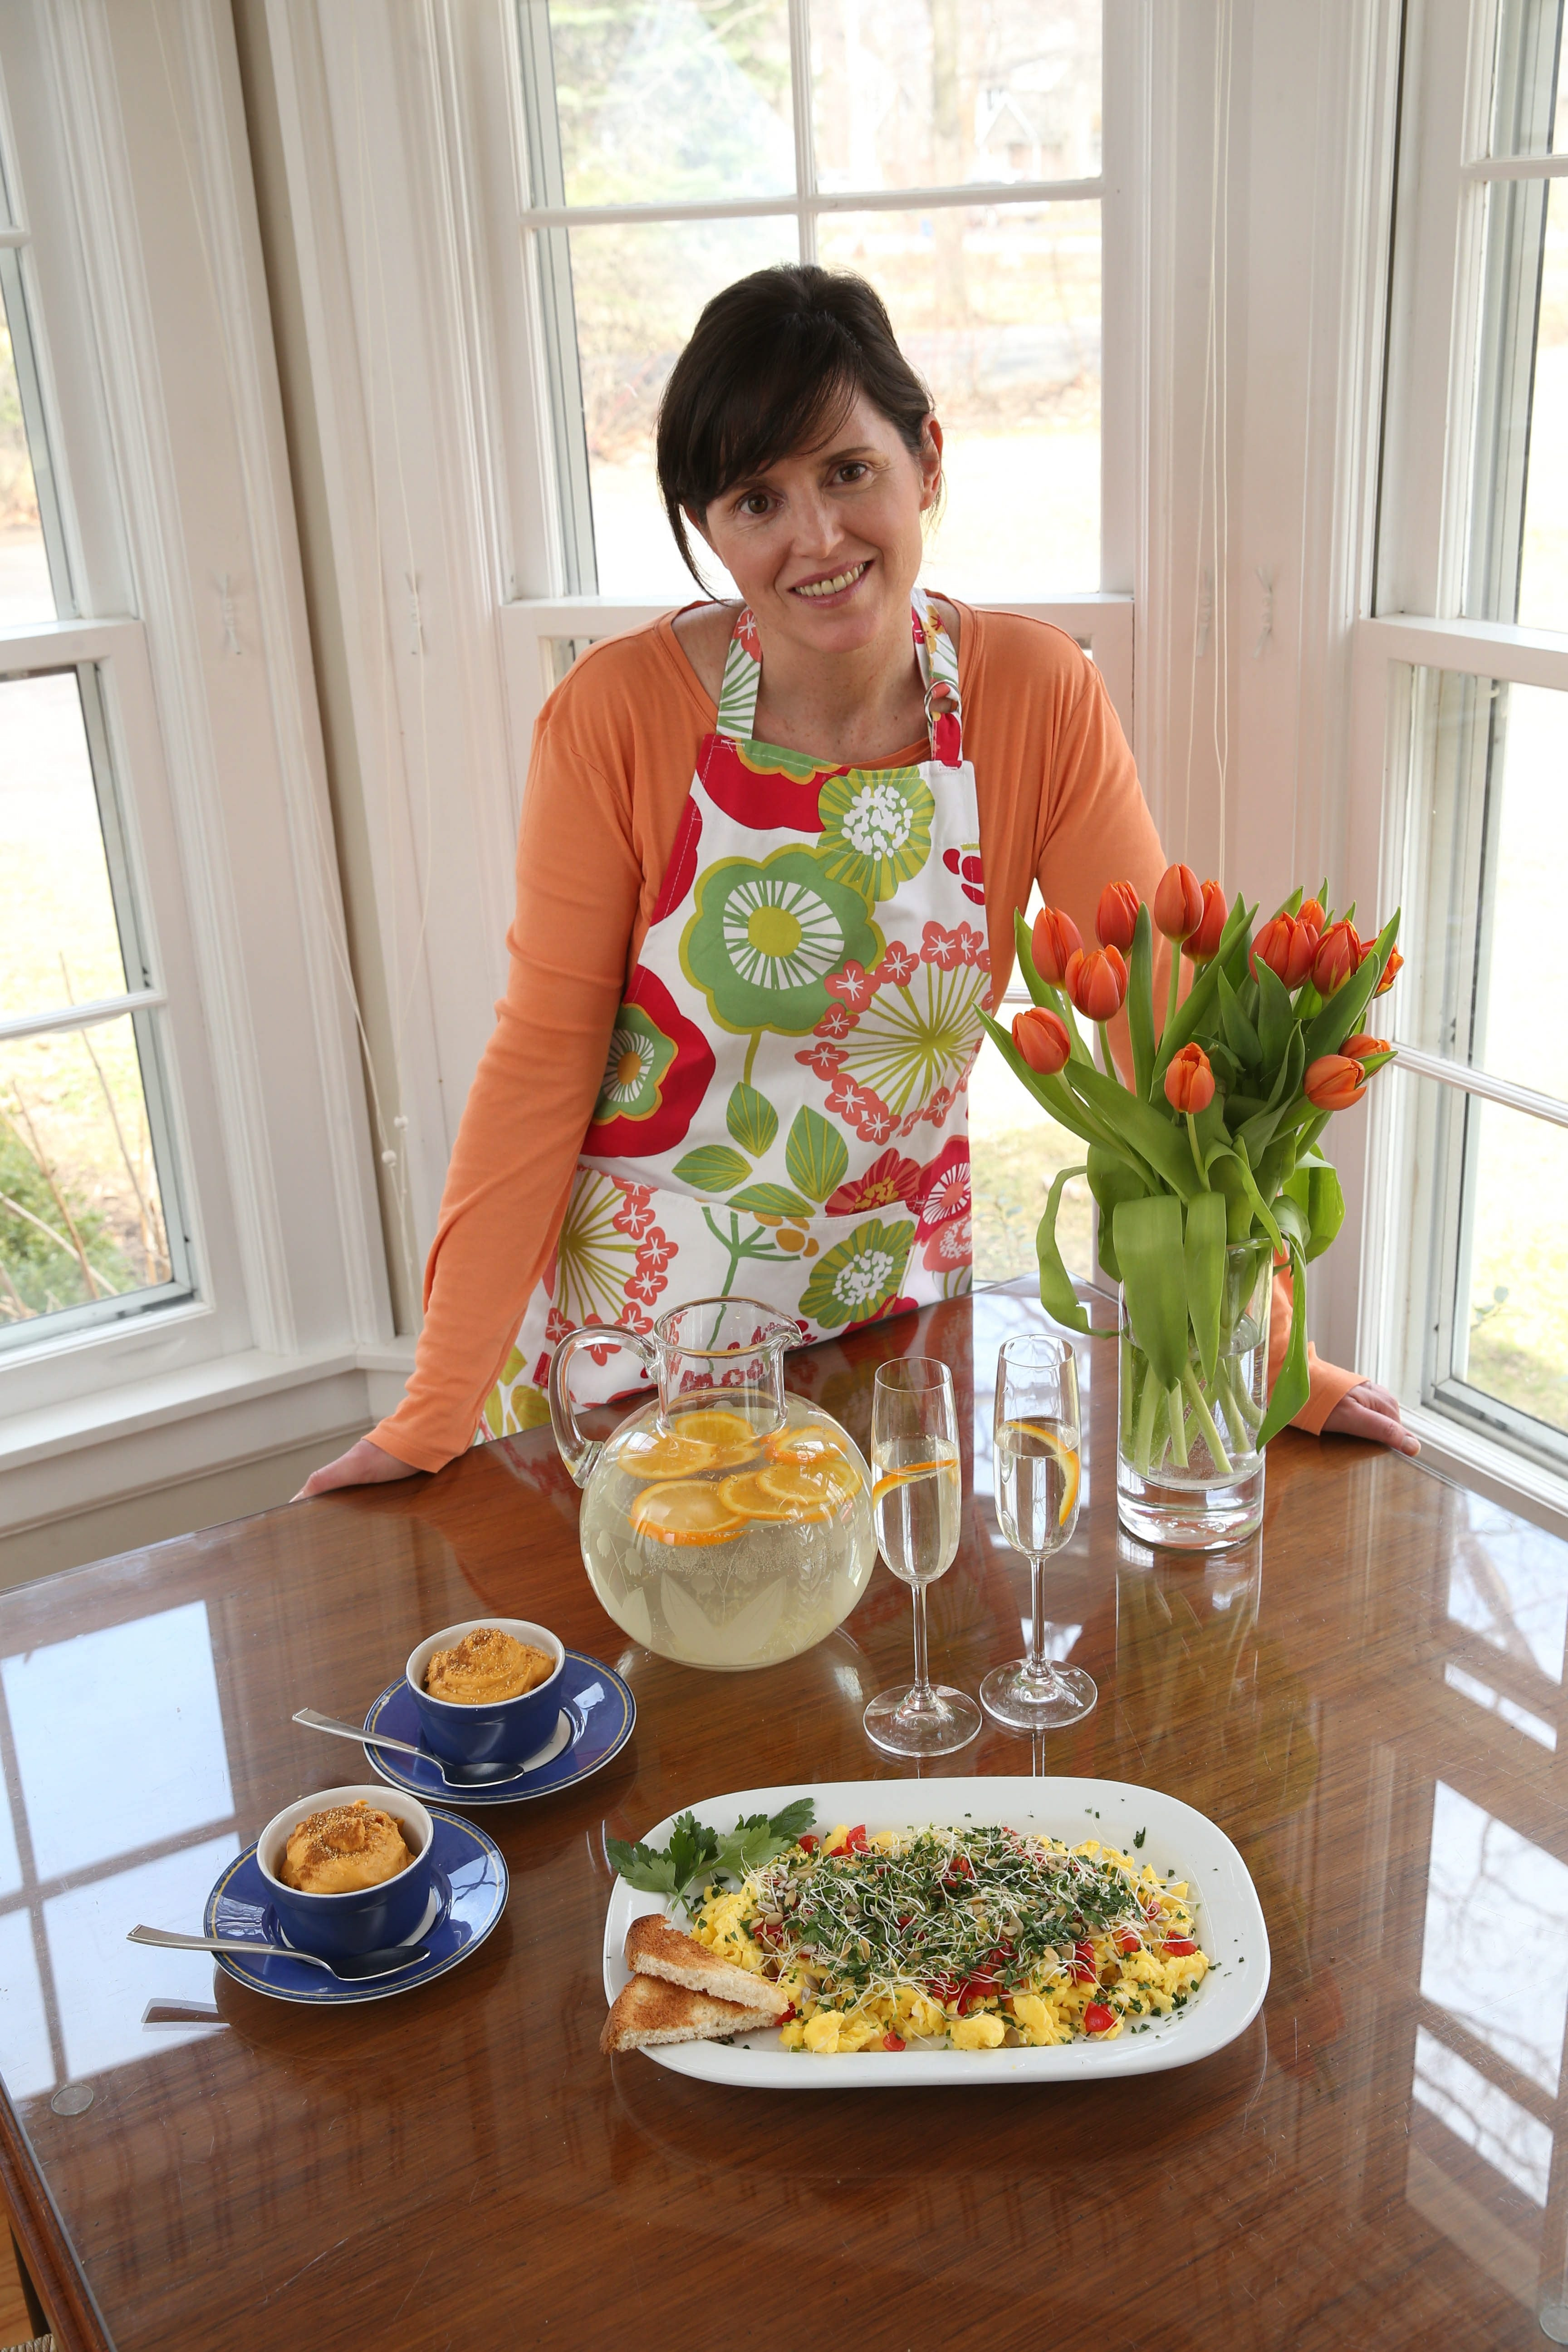 """Kathleen Bradley of Lewiston, a certified professional coach, co-wrote """"The Everything Guide to the Low-FODMAP Diet,"""" a cookbook that promotes a healthy gut. She herself has Irritable Bowel Syndrome and uses the recipes on a daily basis."""